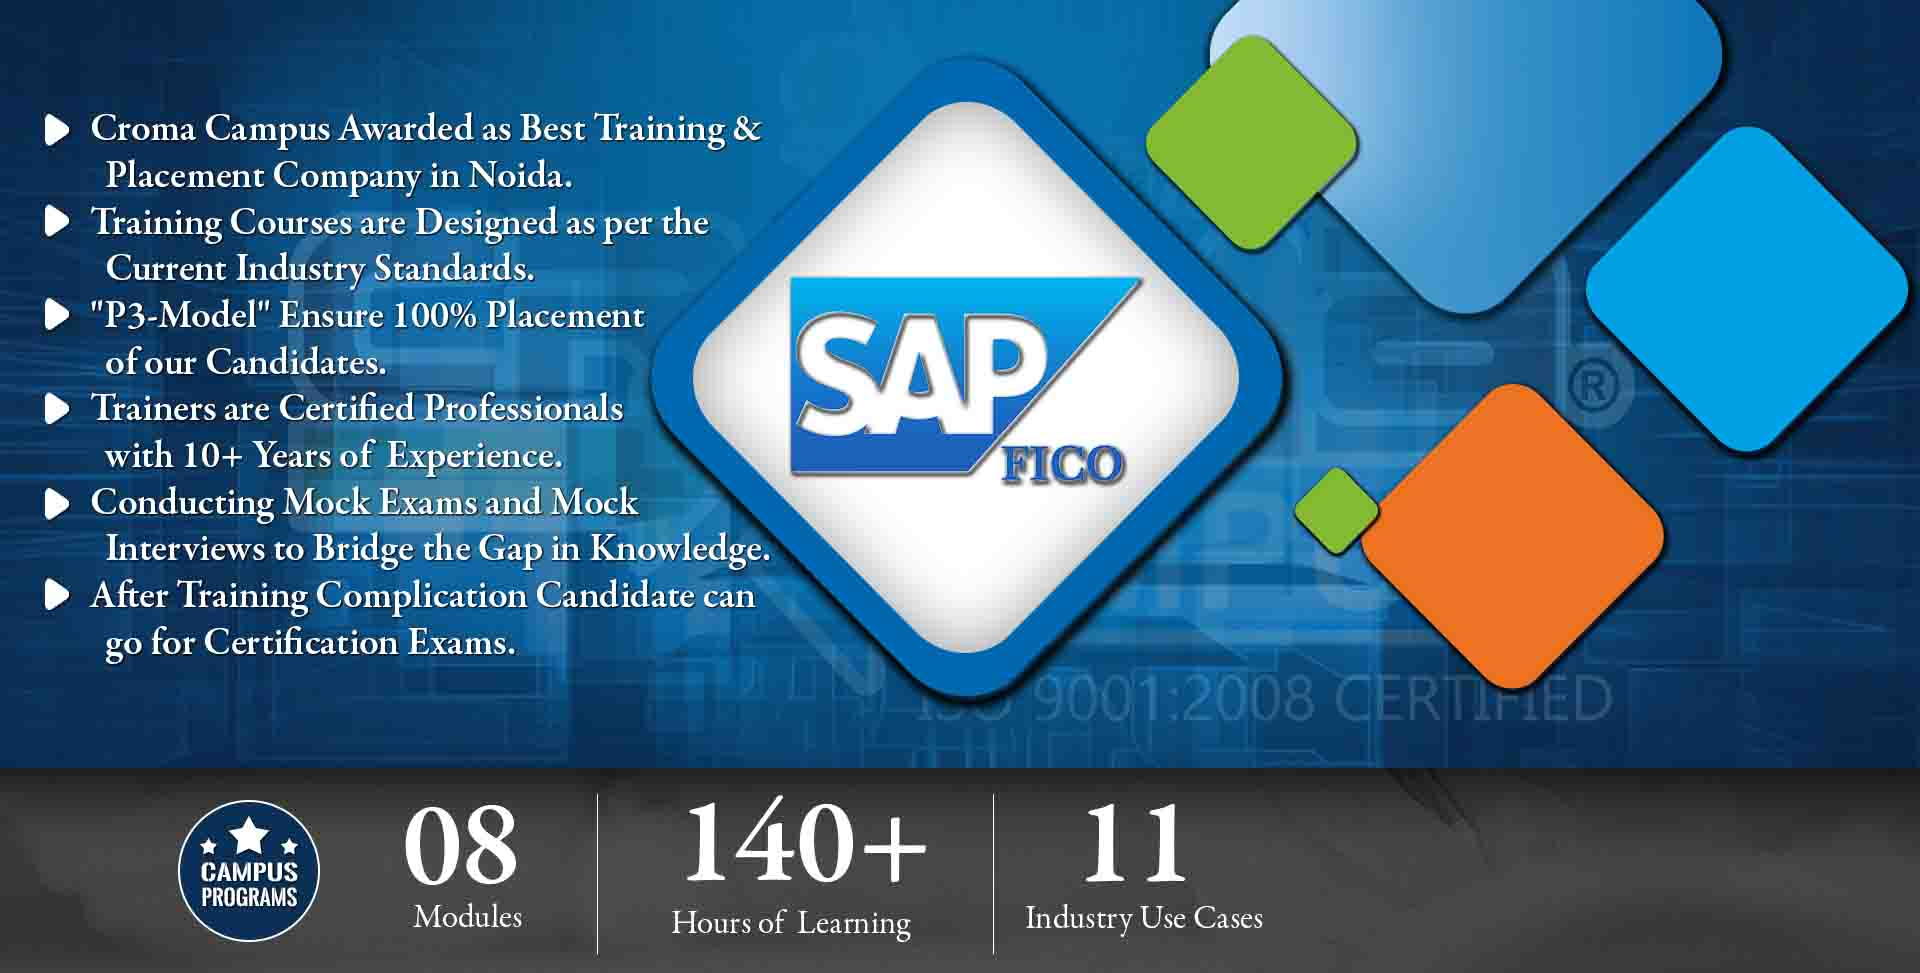 SAP FICO TRAINING INSTITUTE IN DELHI | CROMA CAMPUS